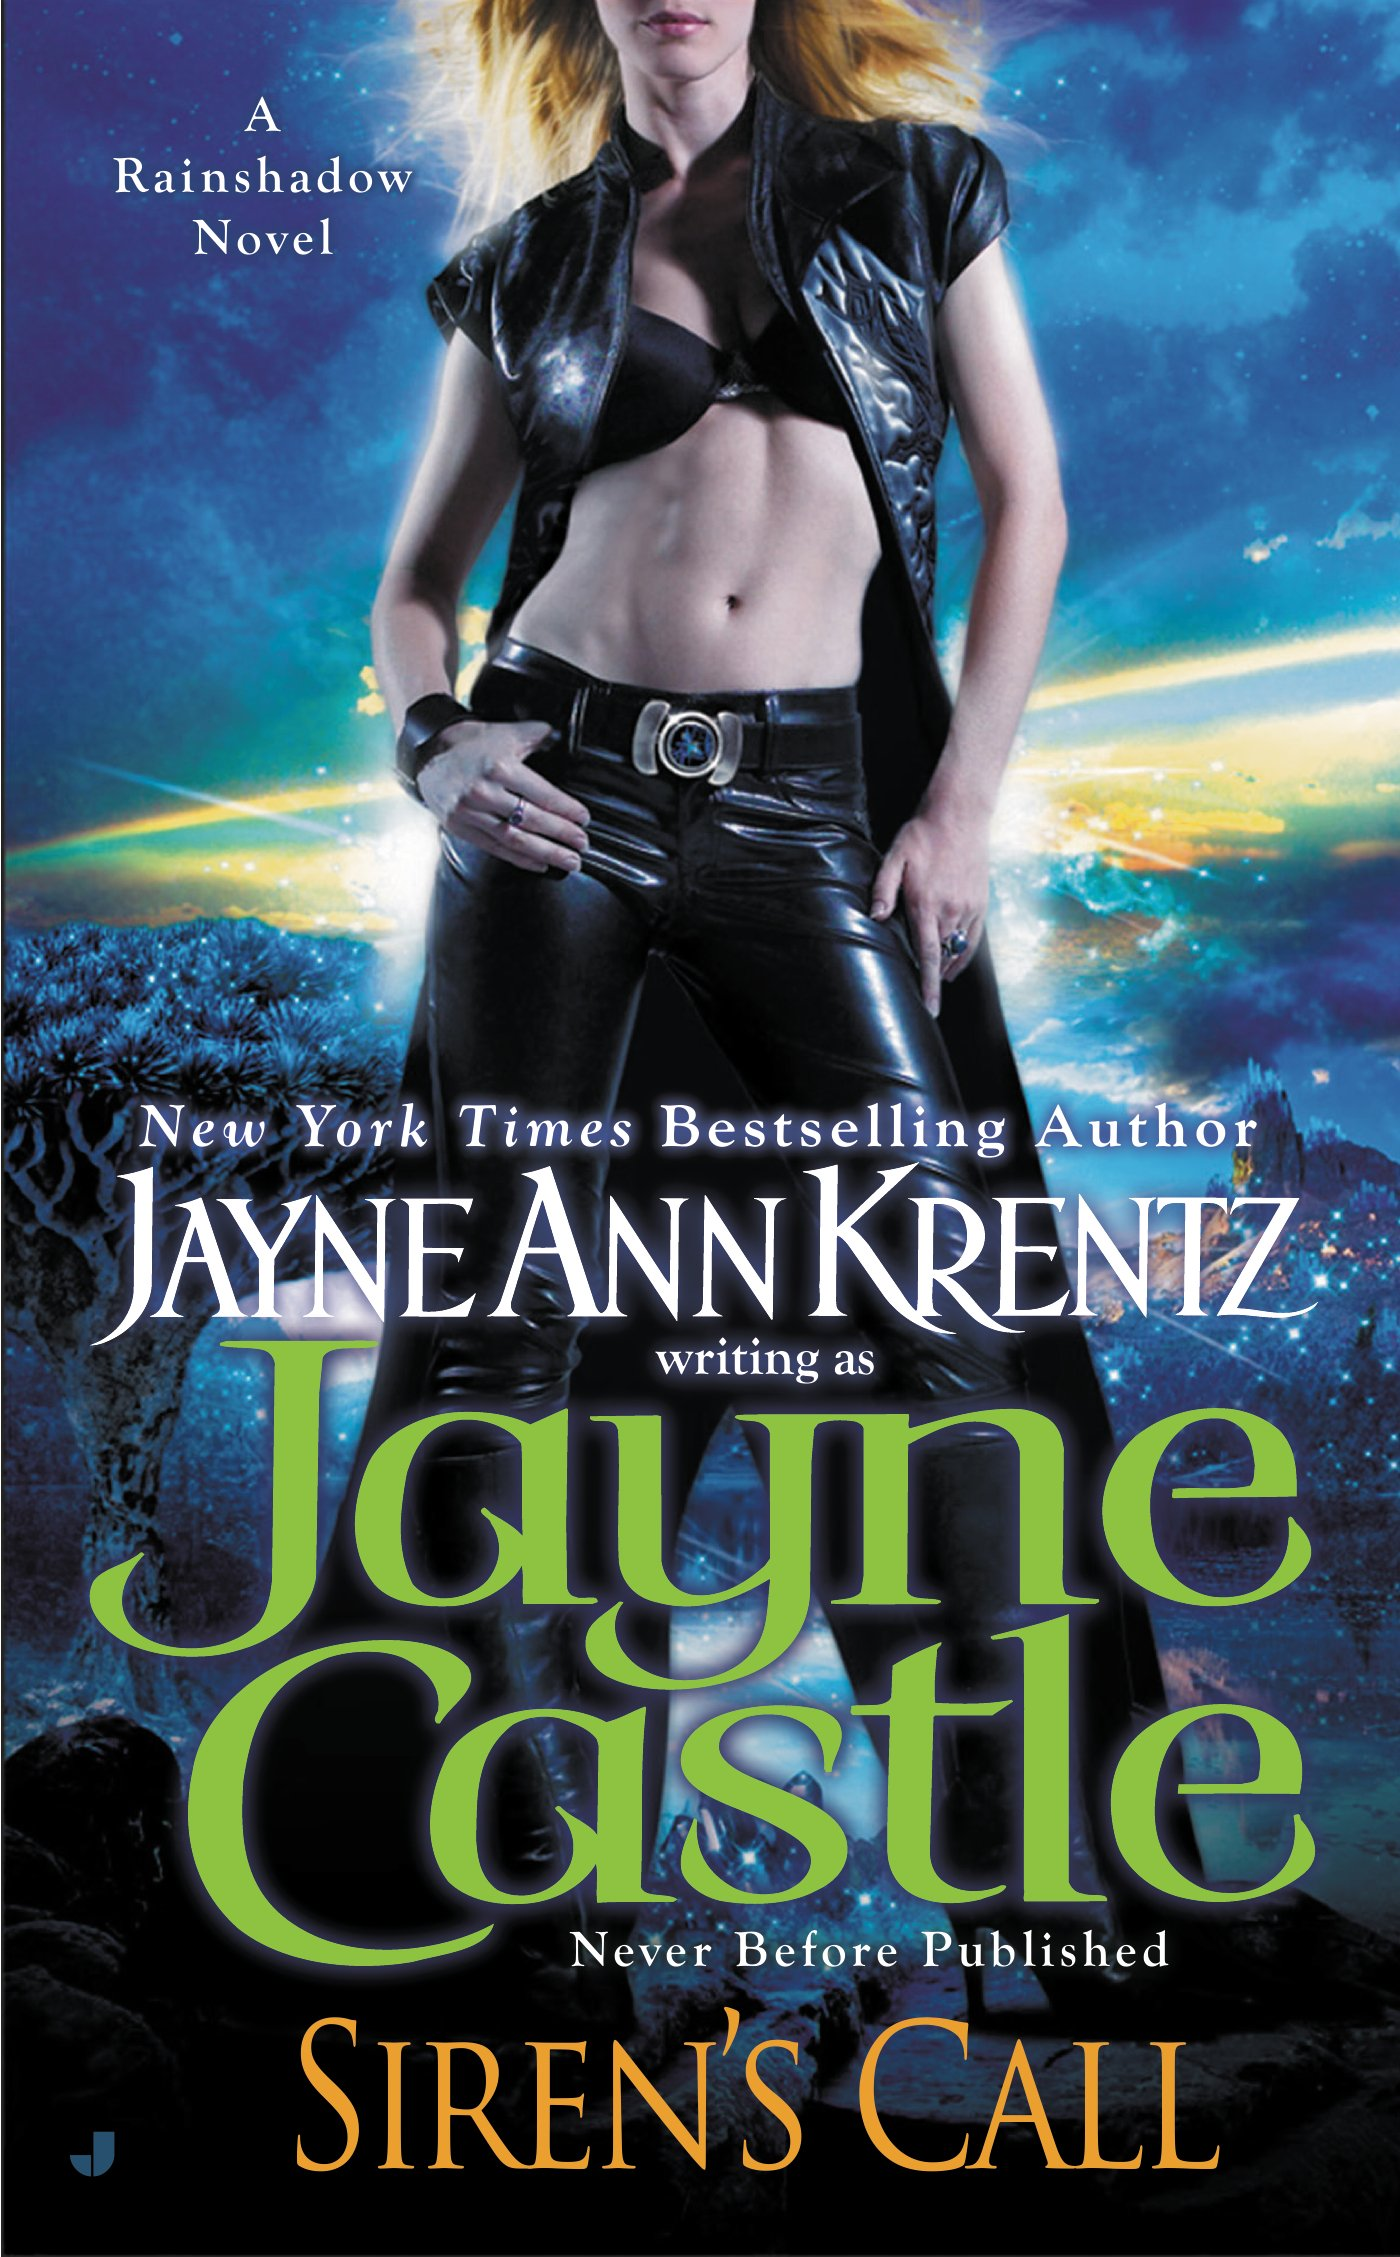 Rainshadow - Books 1 - 4 - Jayne Castle